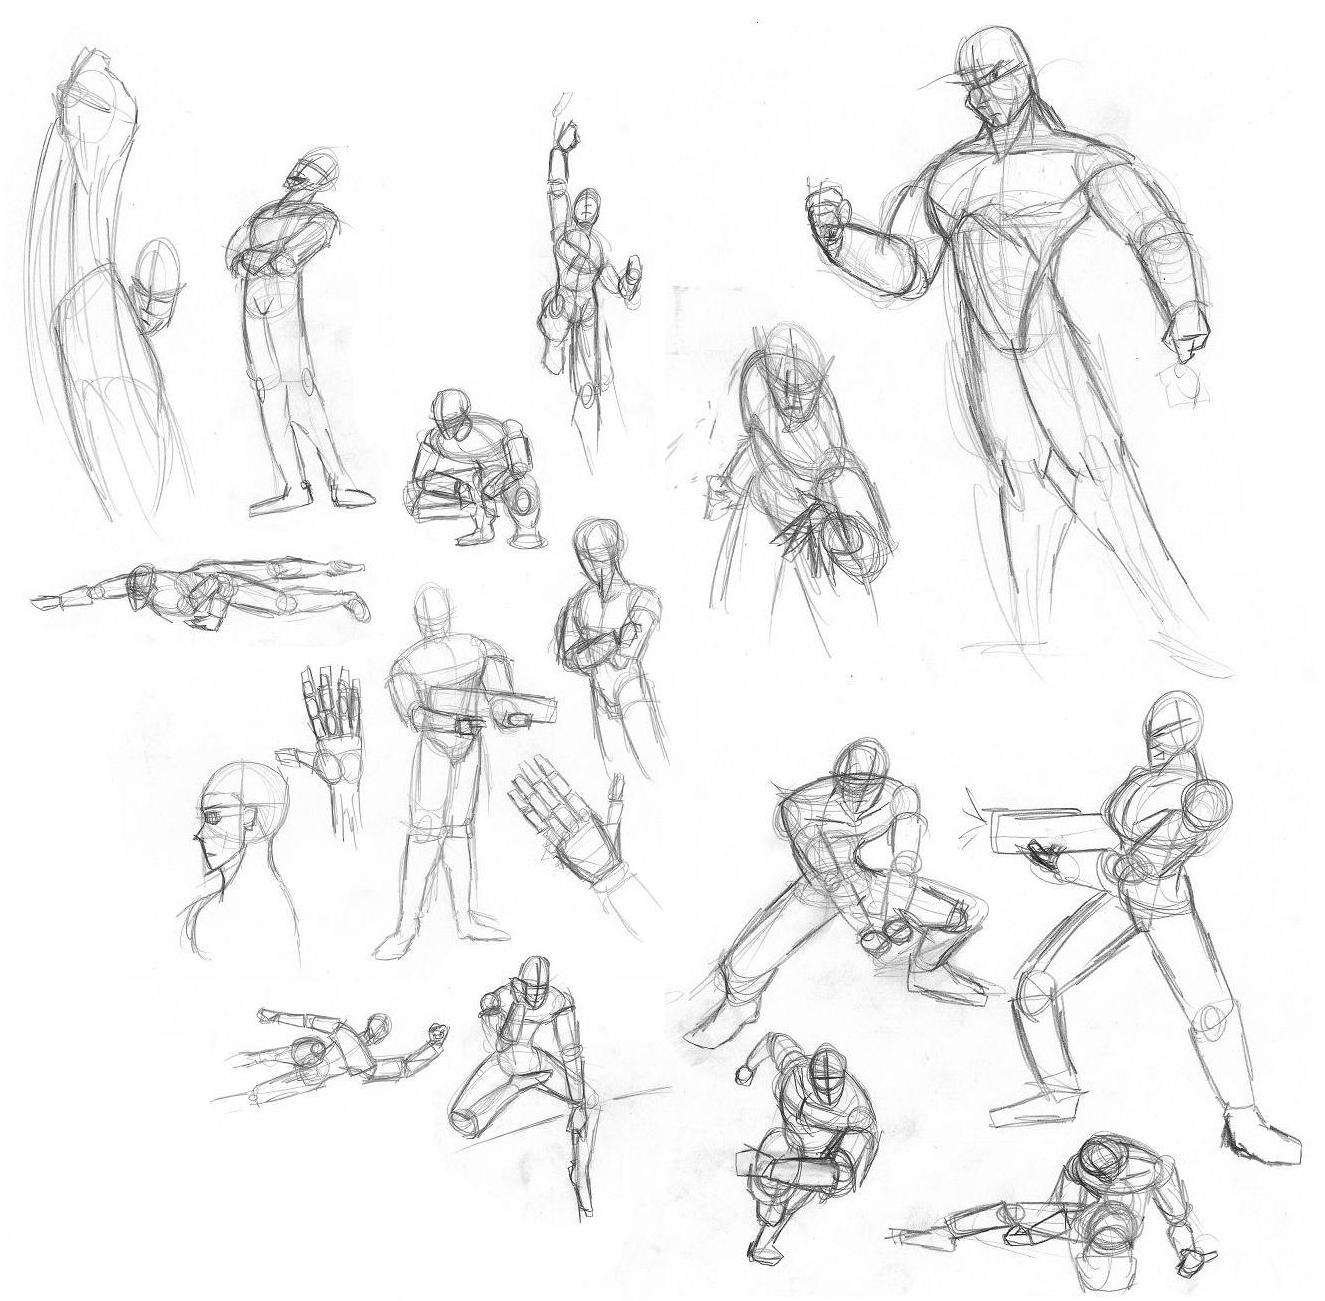 Ilmu Pengetahuan 7 Anime Running Pose This page is about anime action poses,contains independent_major,human poses for drawing at getdrawings com free for,dtk action poses collage1 by rinkuchan27 on blog 1: ilmu pengetahuan 7 anime running pose